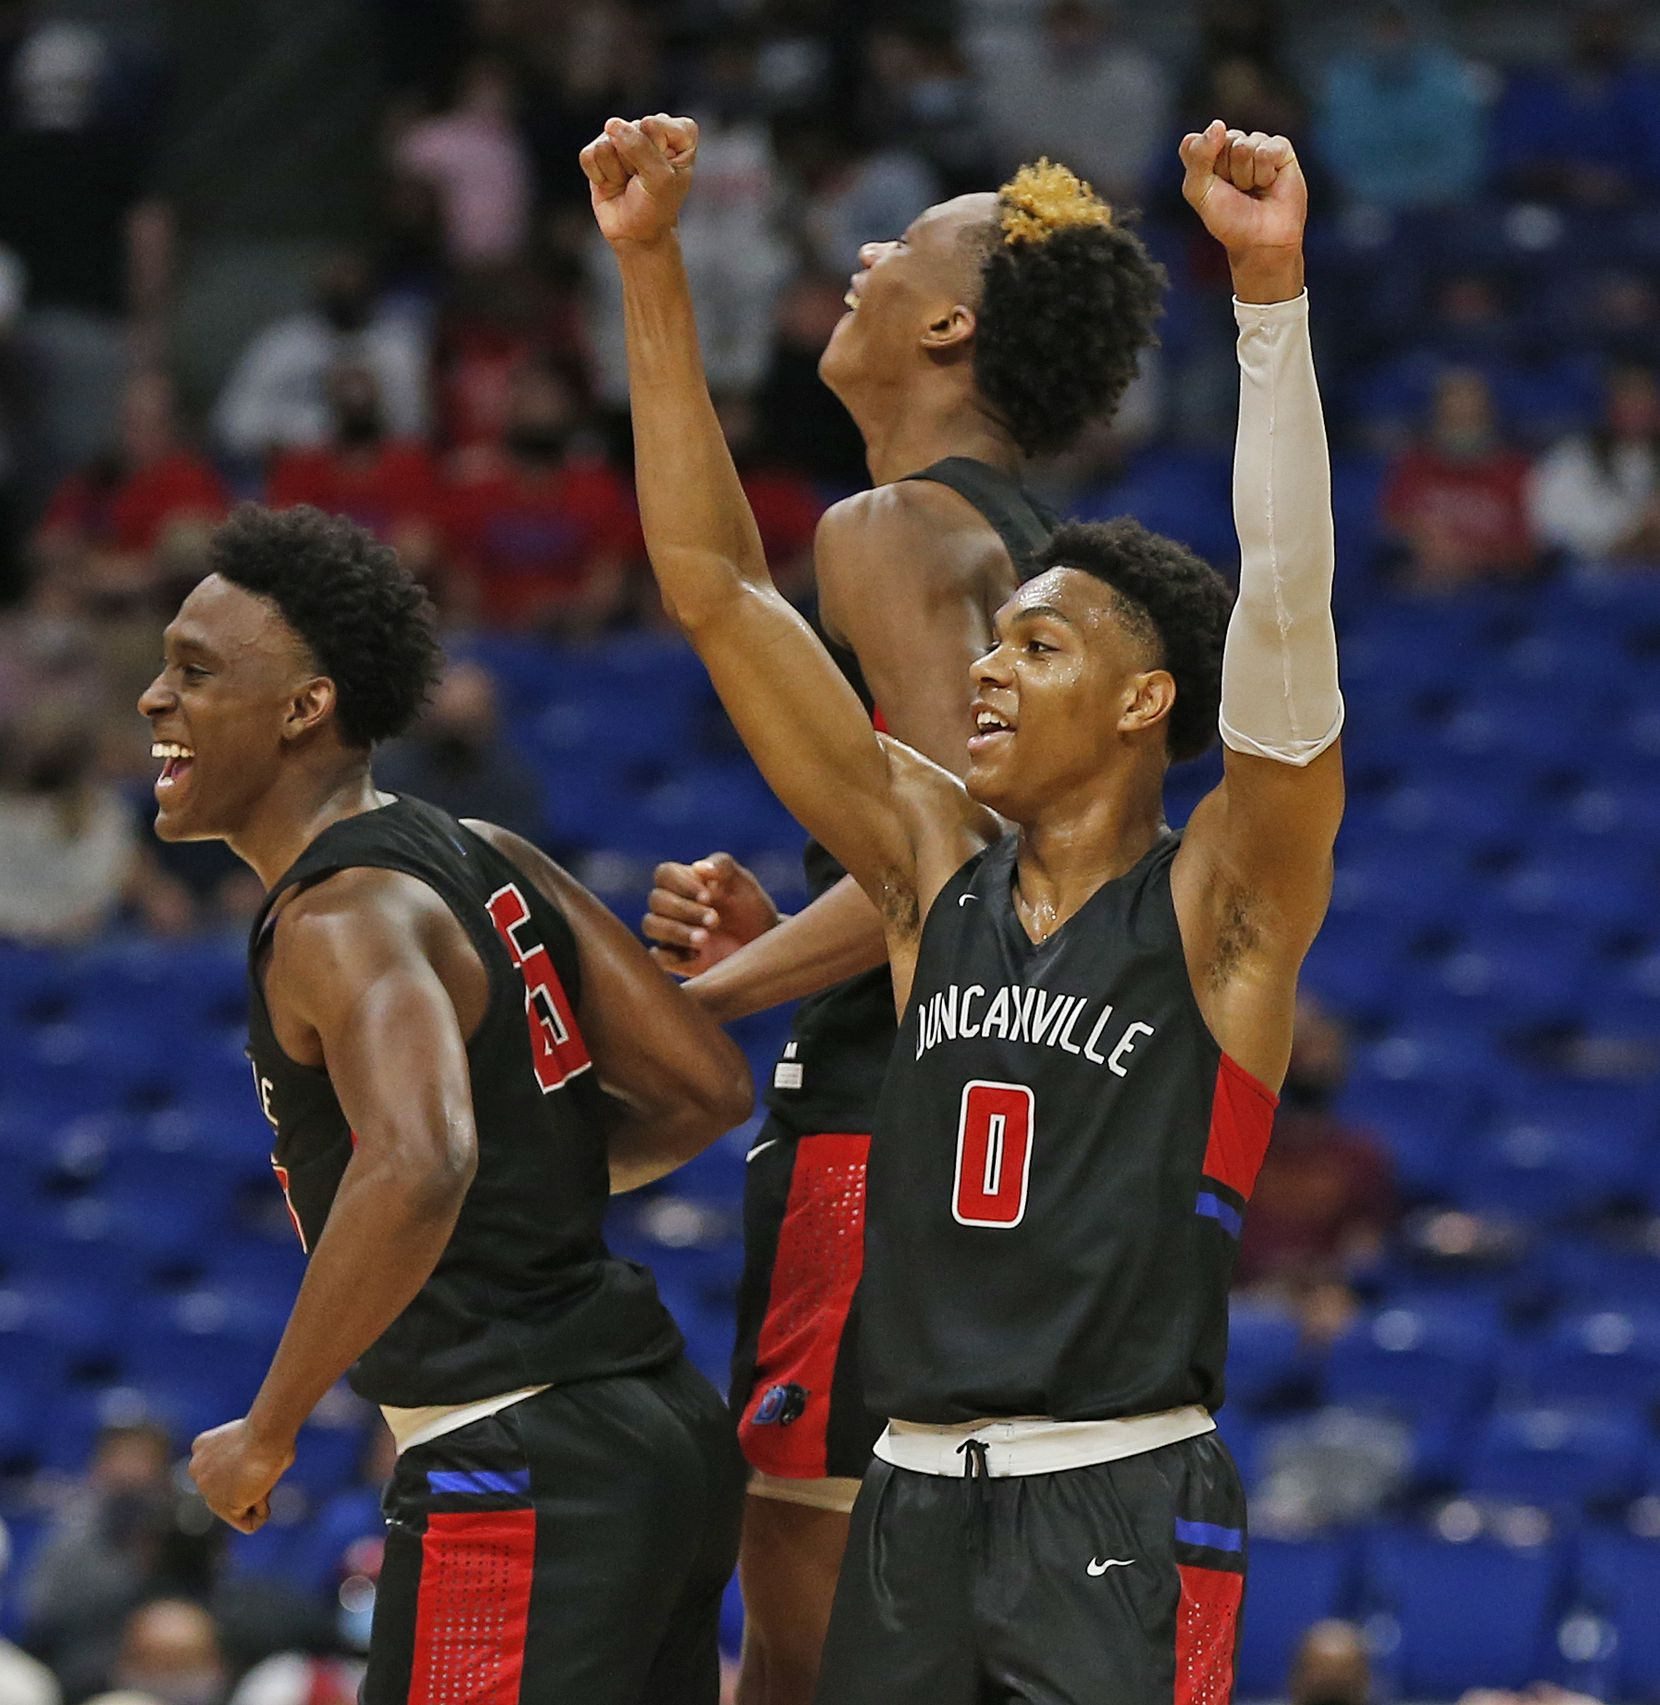 Duncanville Zhuric Phelps #0 celebrates with teammates. UIL boys Class 6A basketball state championship game between Duncanville and Austin Westlake on Saturday, March 13, 2021 at the Alamodome.